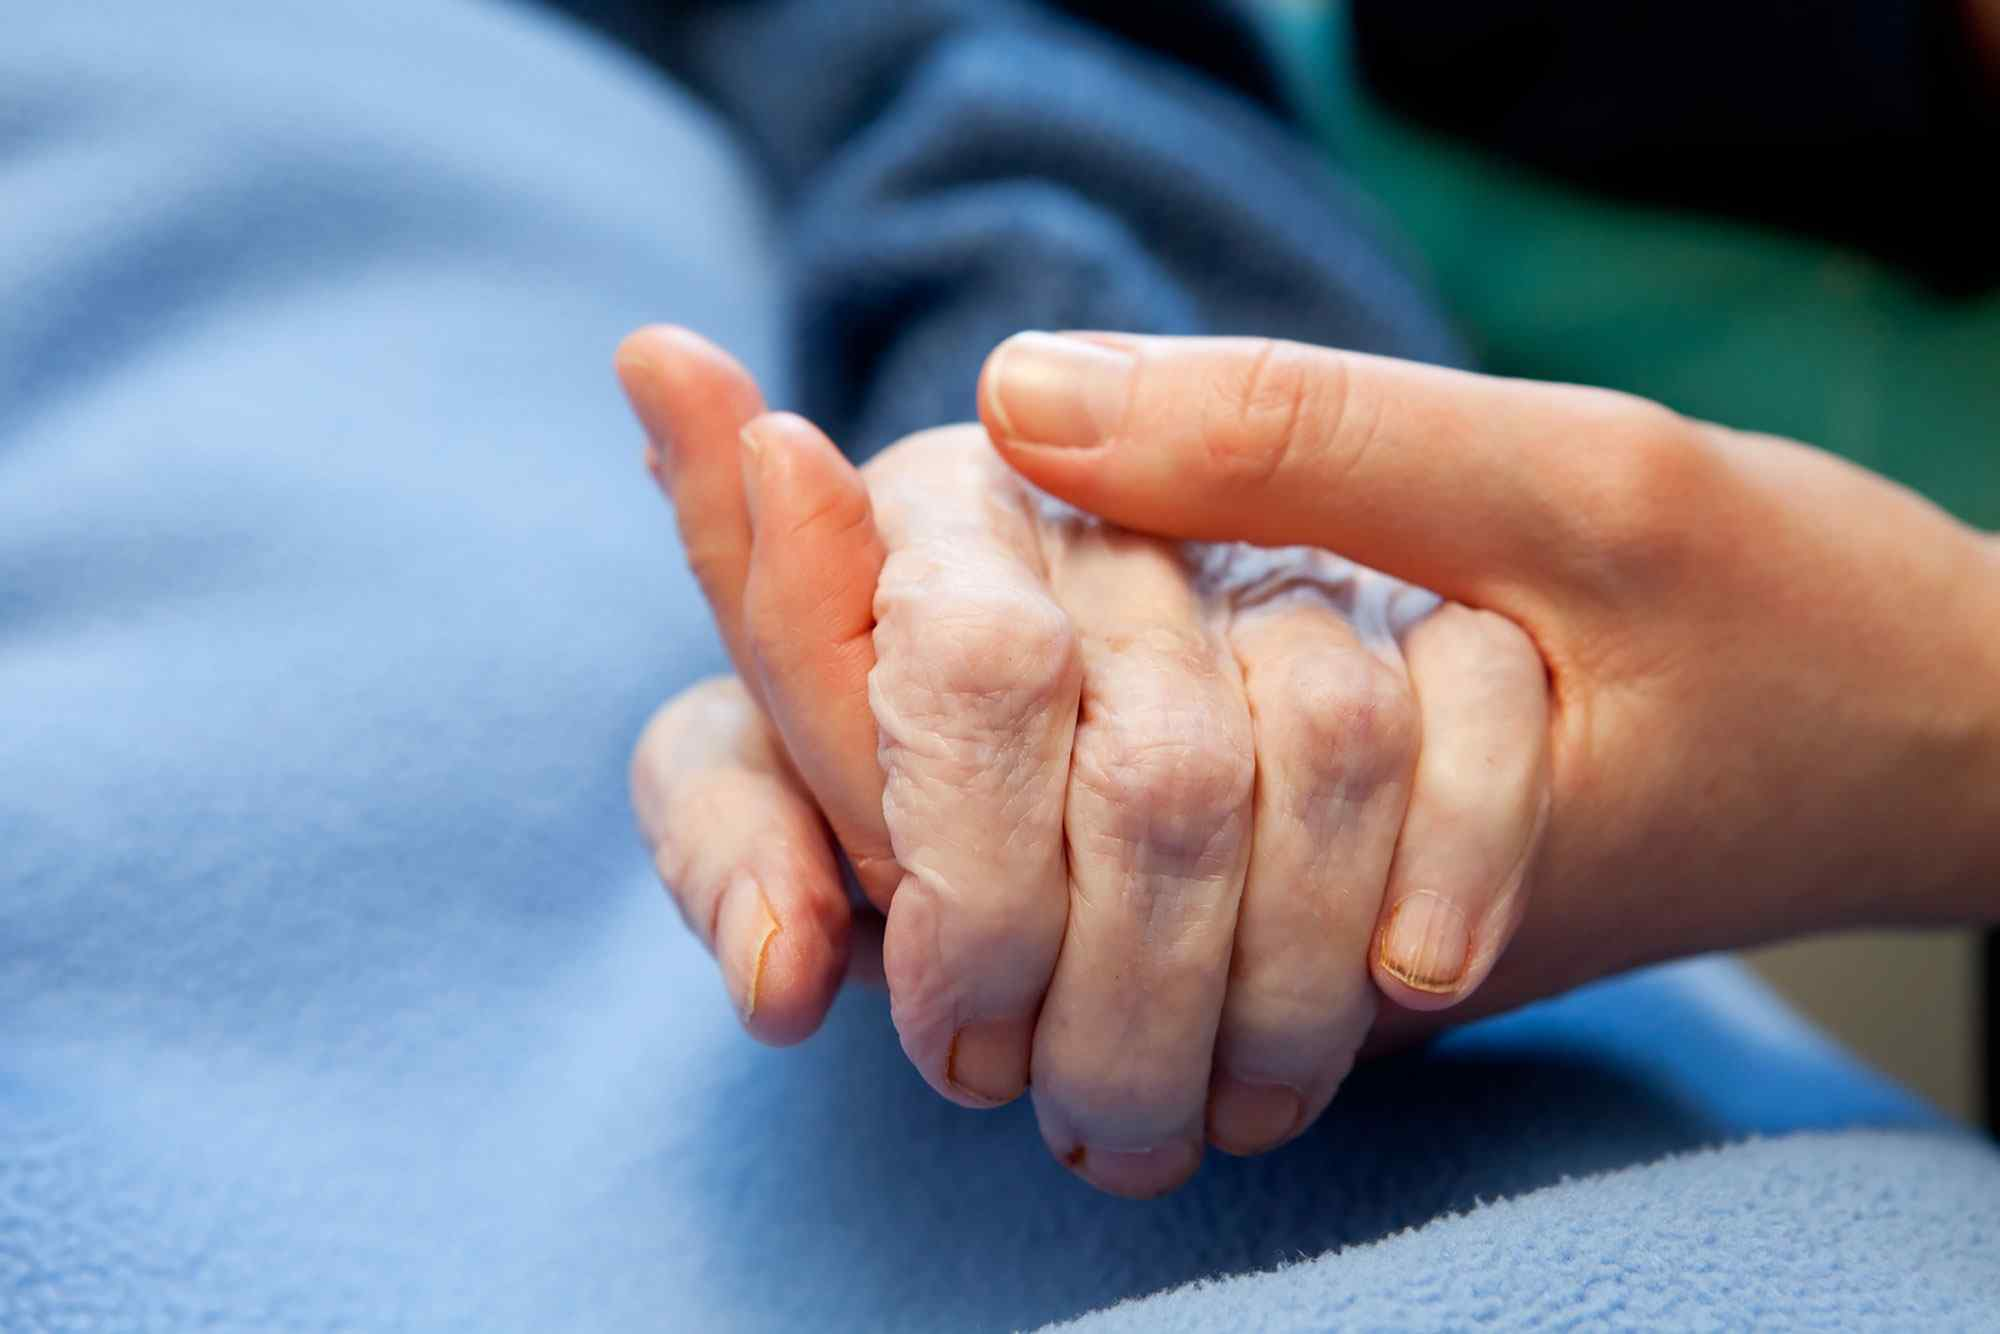 Two hands holding each other hoping to find the right home health and hospice answering service